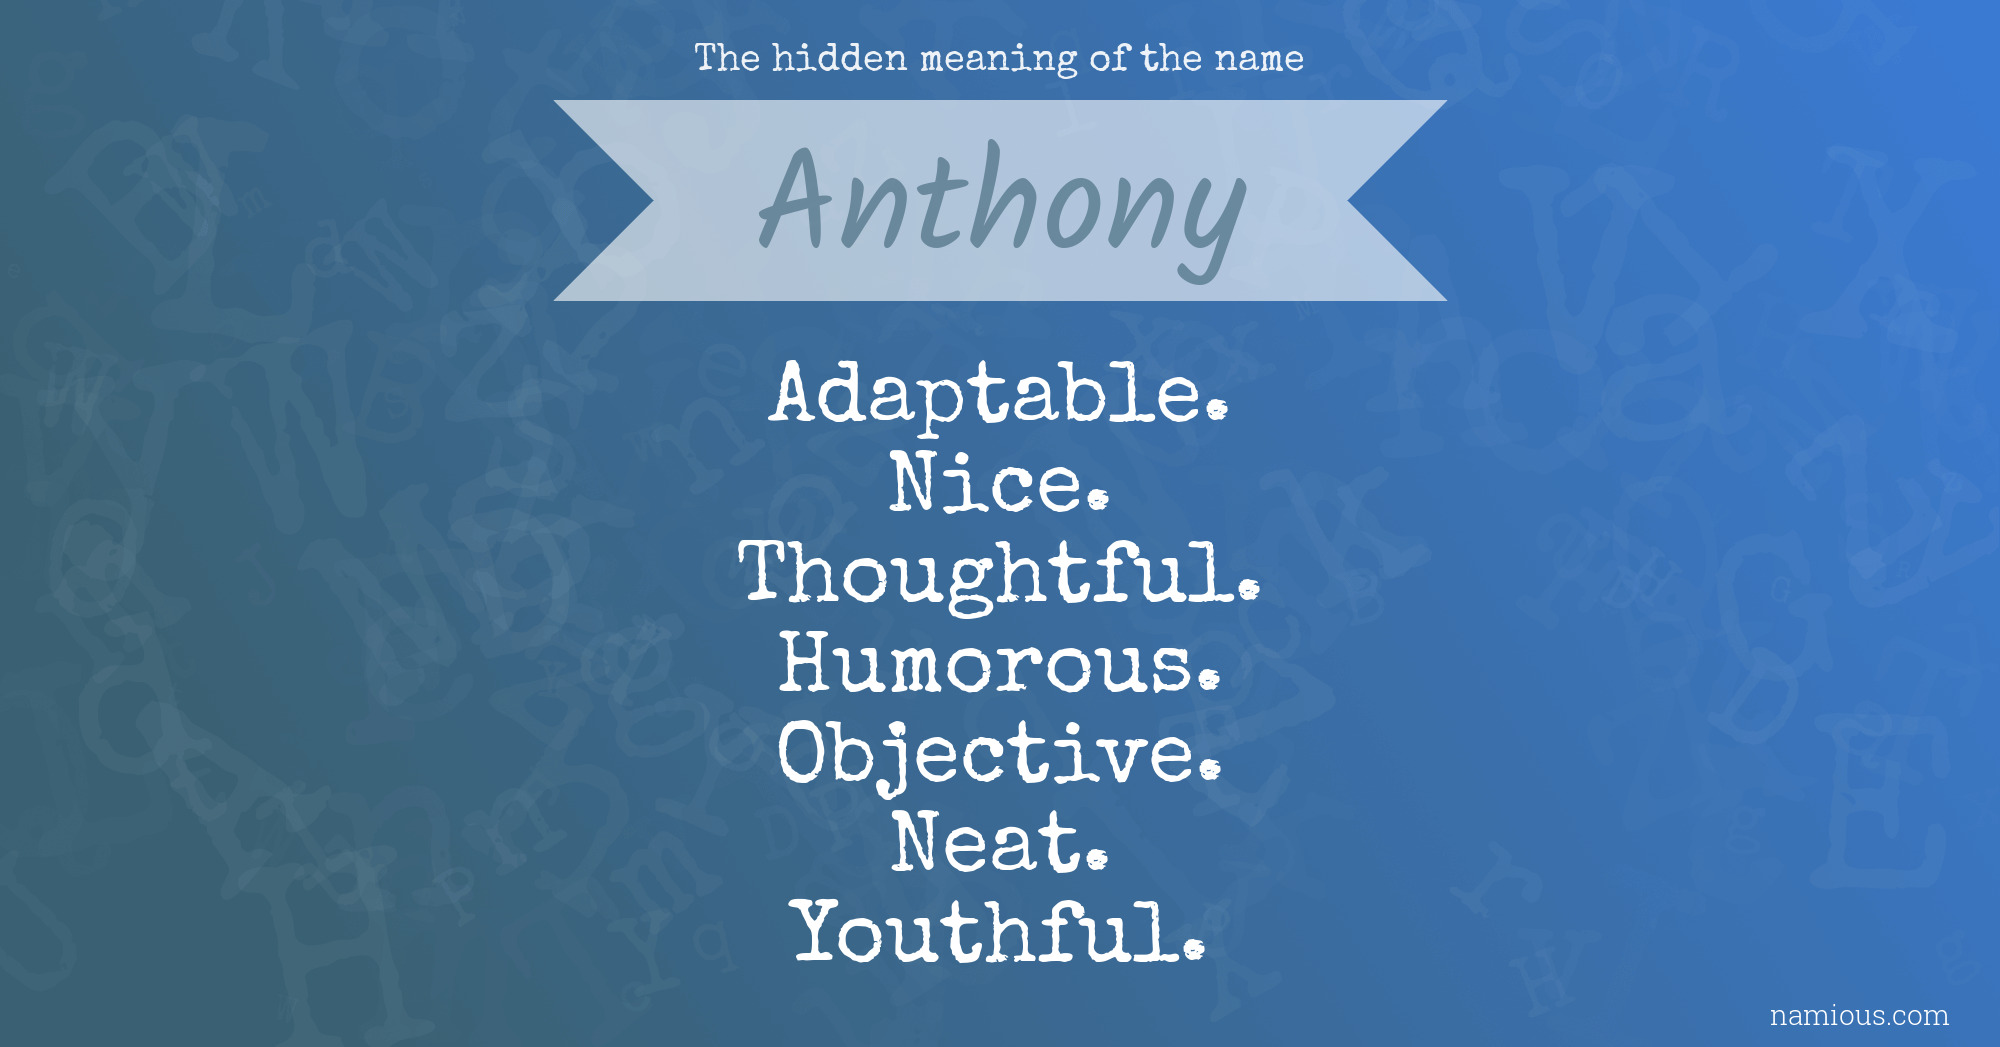 The hidden meaning of the name Anthony